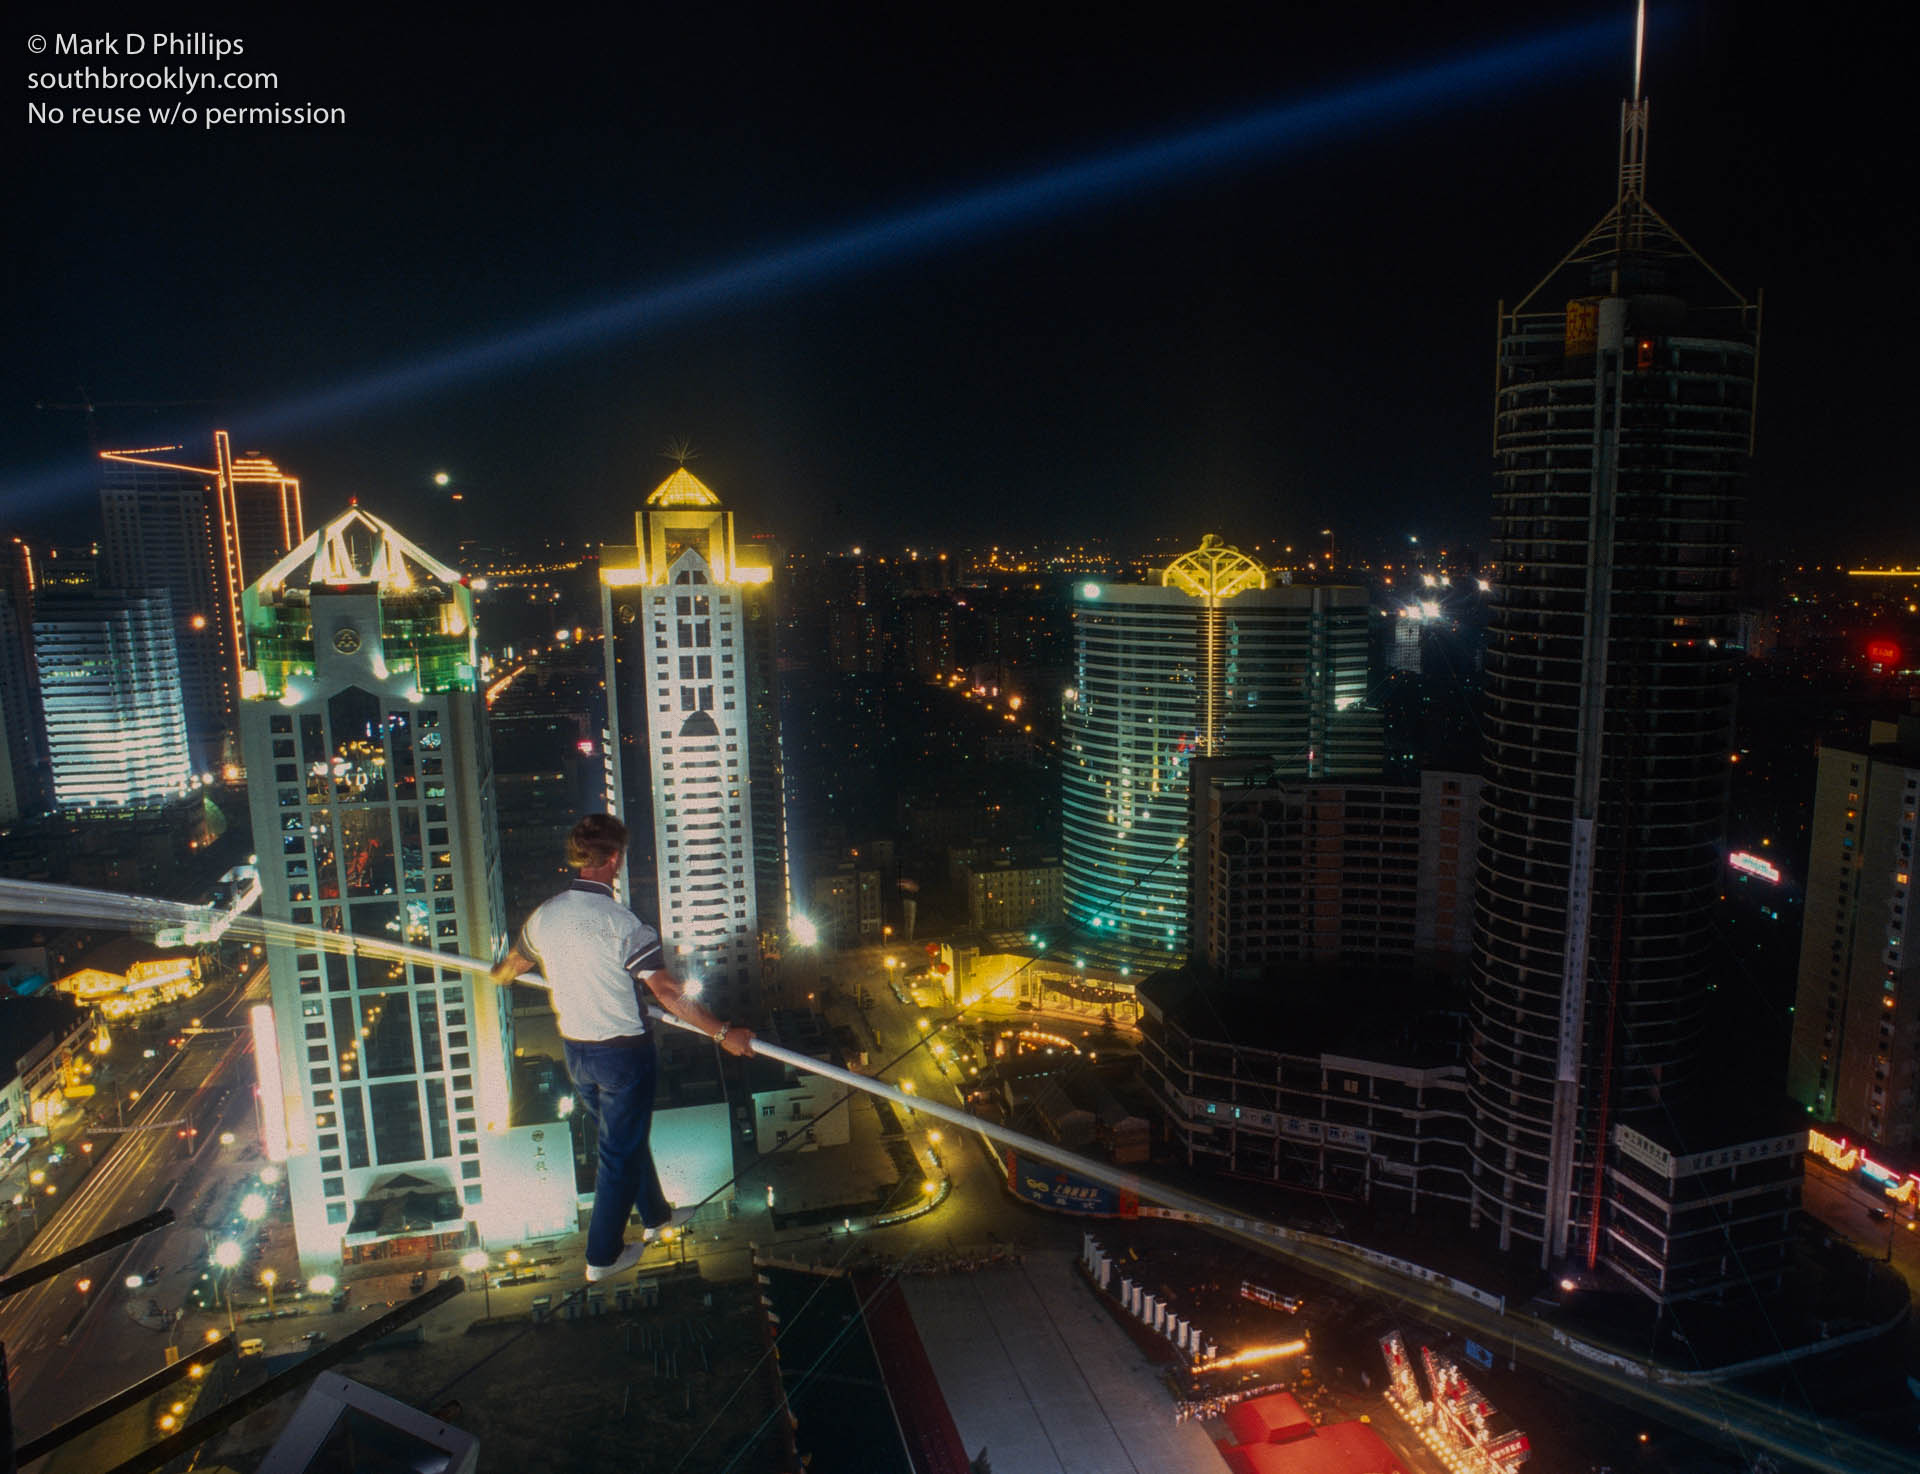 Jay Cochrane tests the wire  in Shanghai, China, the night before the opening of the Shanghai Tourism Festival on September 24, 1996